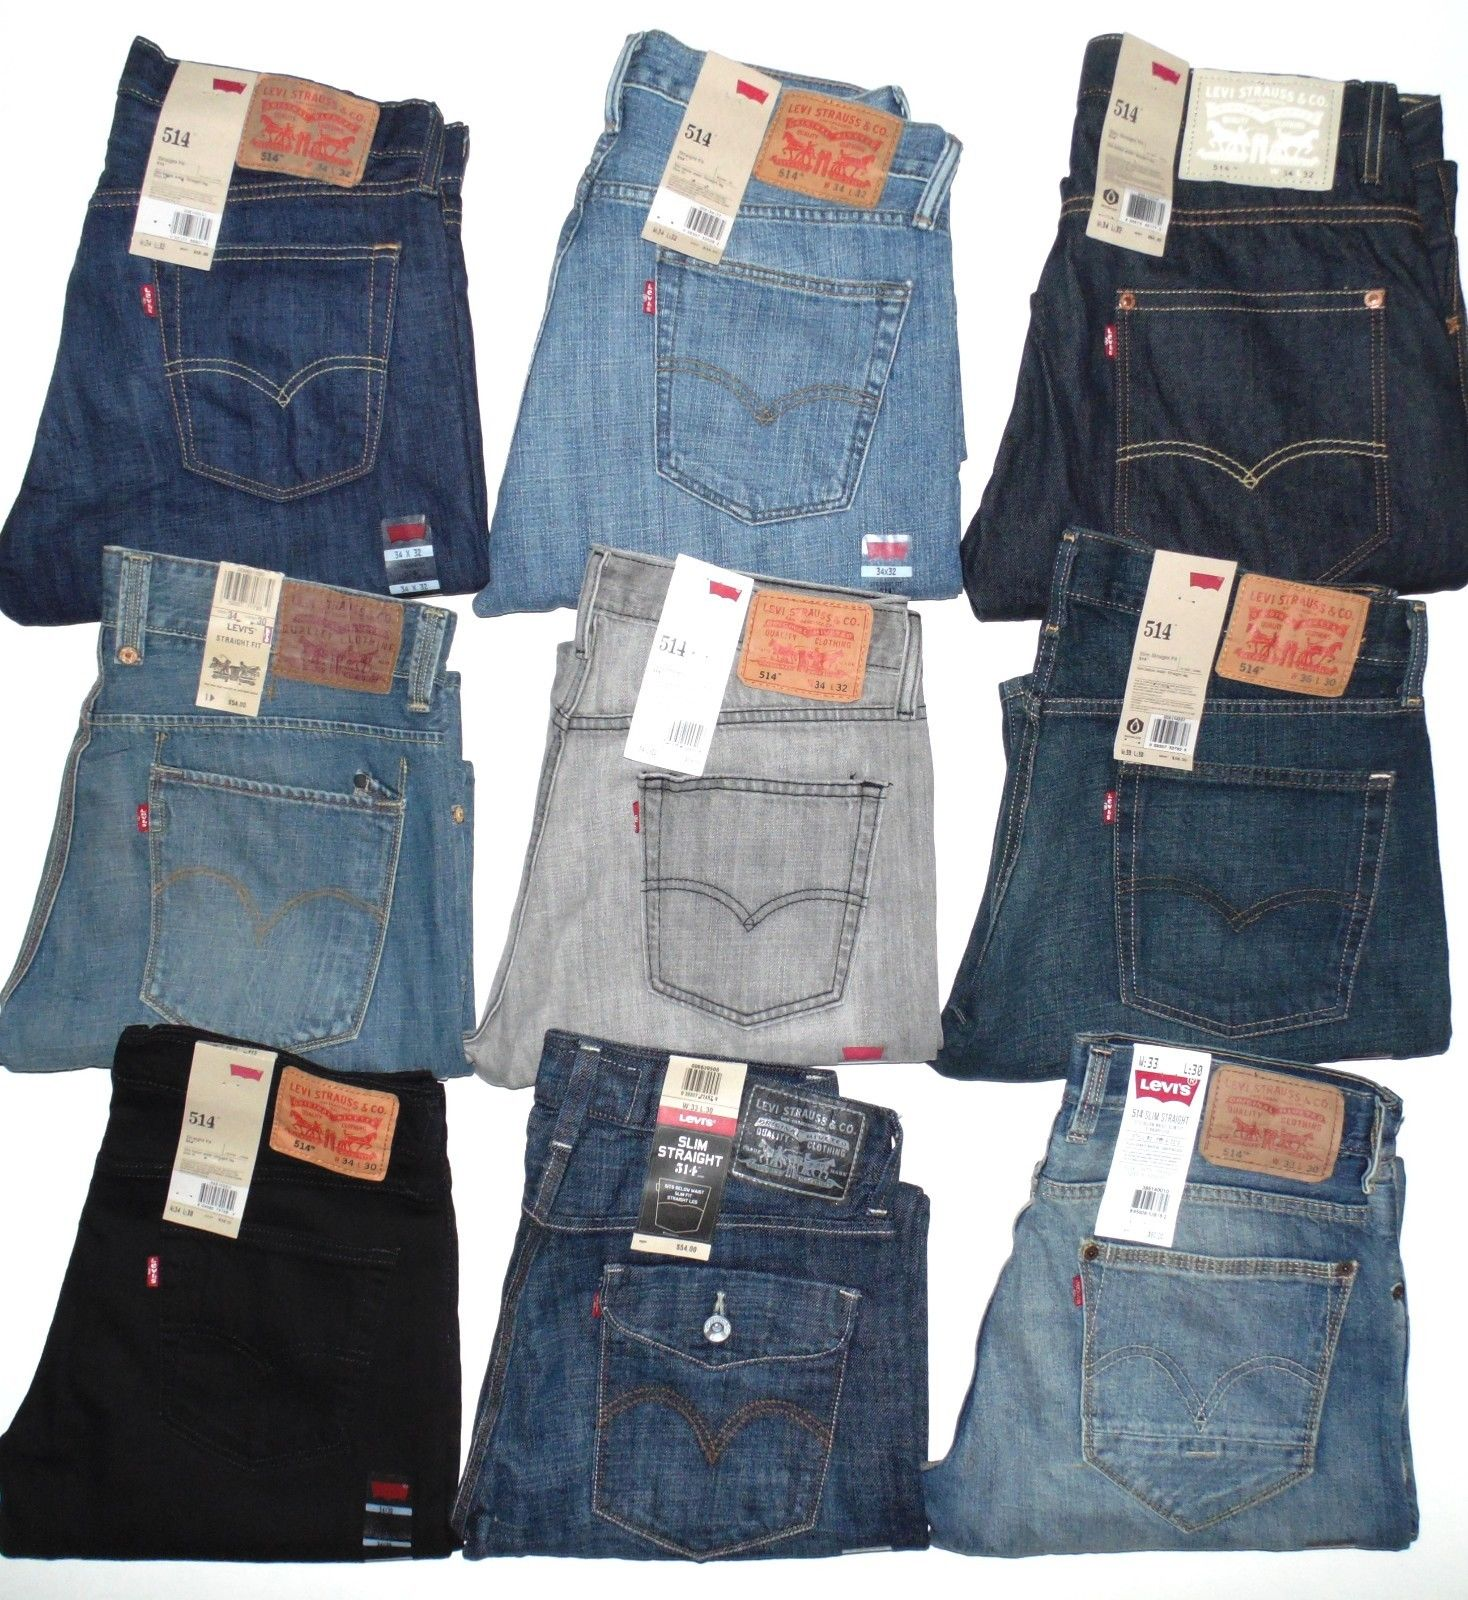 91bda16c65a Levis 514 Mens Jeans Slim Fit Straight Leg Many Sizes Many Colors New With  Tags. CLICK HERE~. Yep, these were the jeans I was talking to you about  earlier.